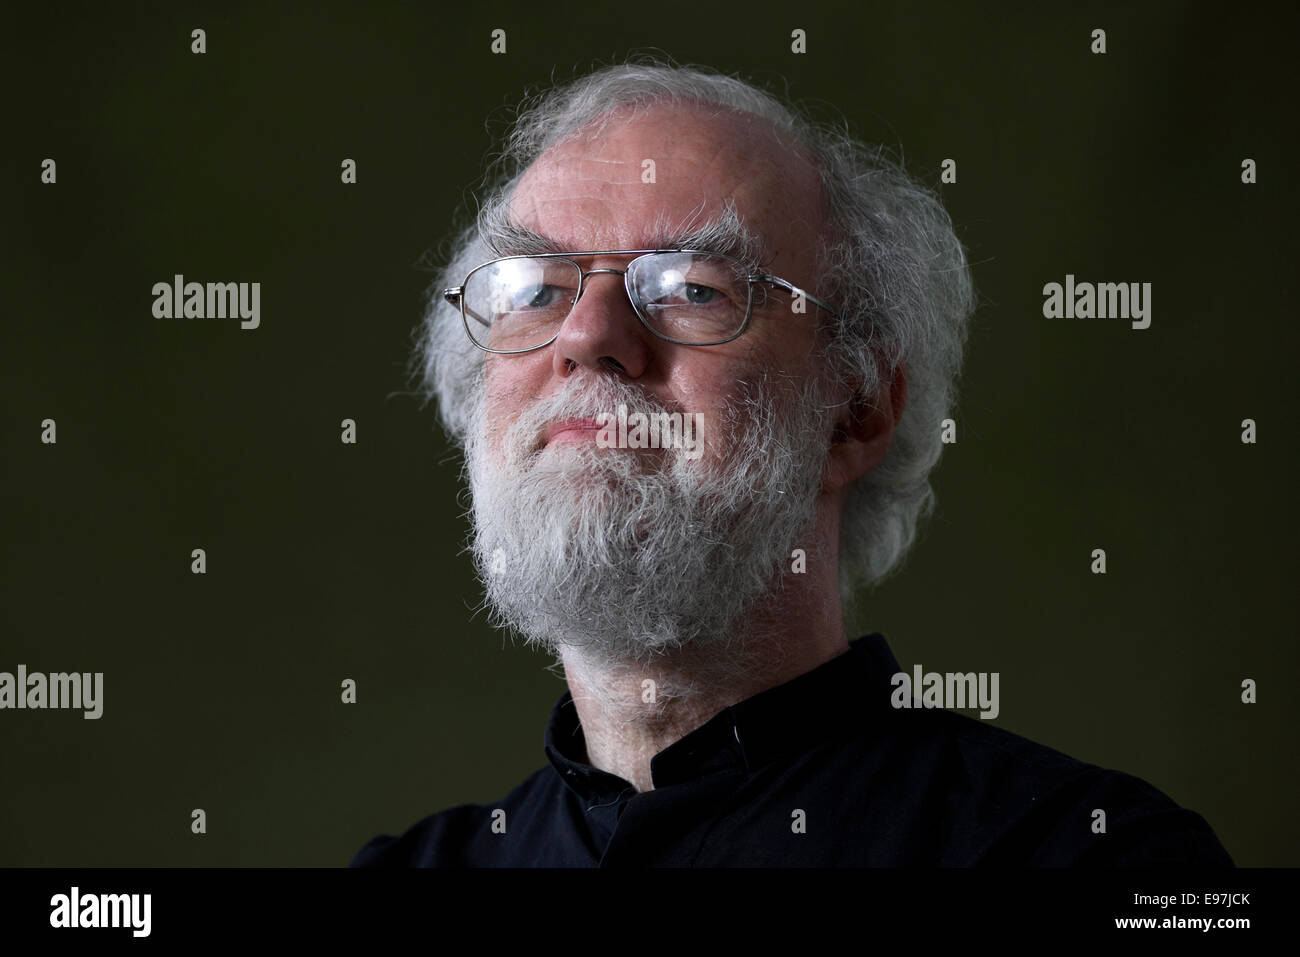 Rowan Douglas Williams, Baron Williams of Oystermouth PC FBA FRSL FLSW, Anglican bishop, poet and theologian. - Stock Image